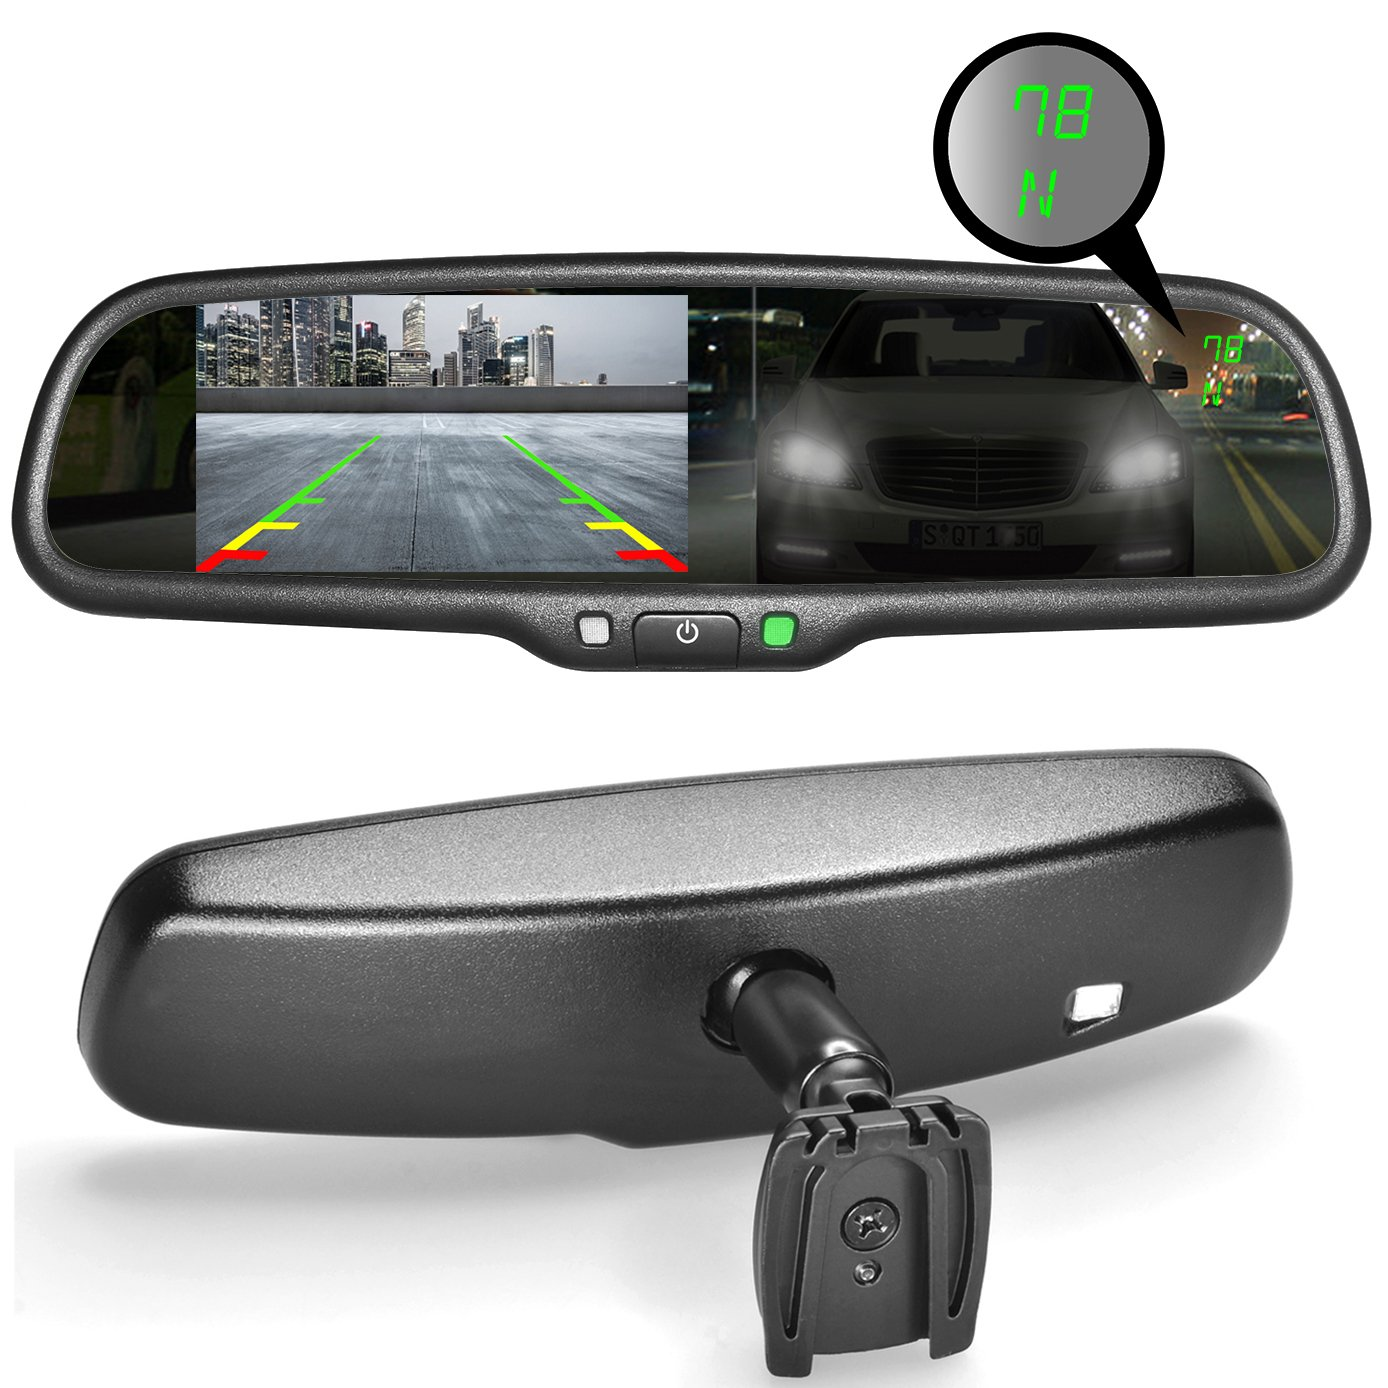 Master Tailgaters OEM Rear View Mirror with Ultra Bright 4.3'' Auto Adjusting Brightness LCD + Auto Dimming Mirror + Compass & Temperature- Universal Fit